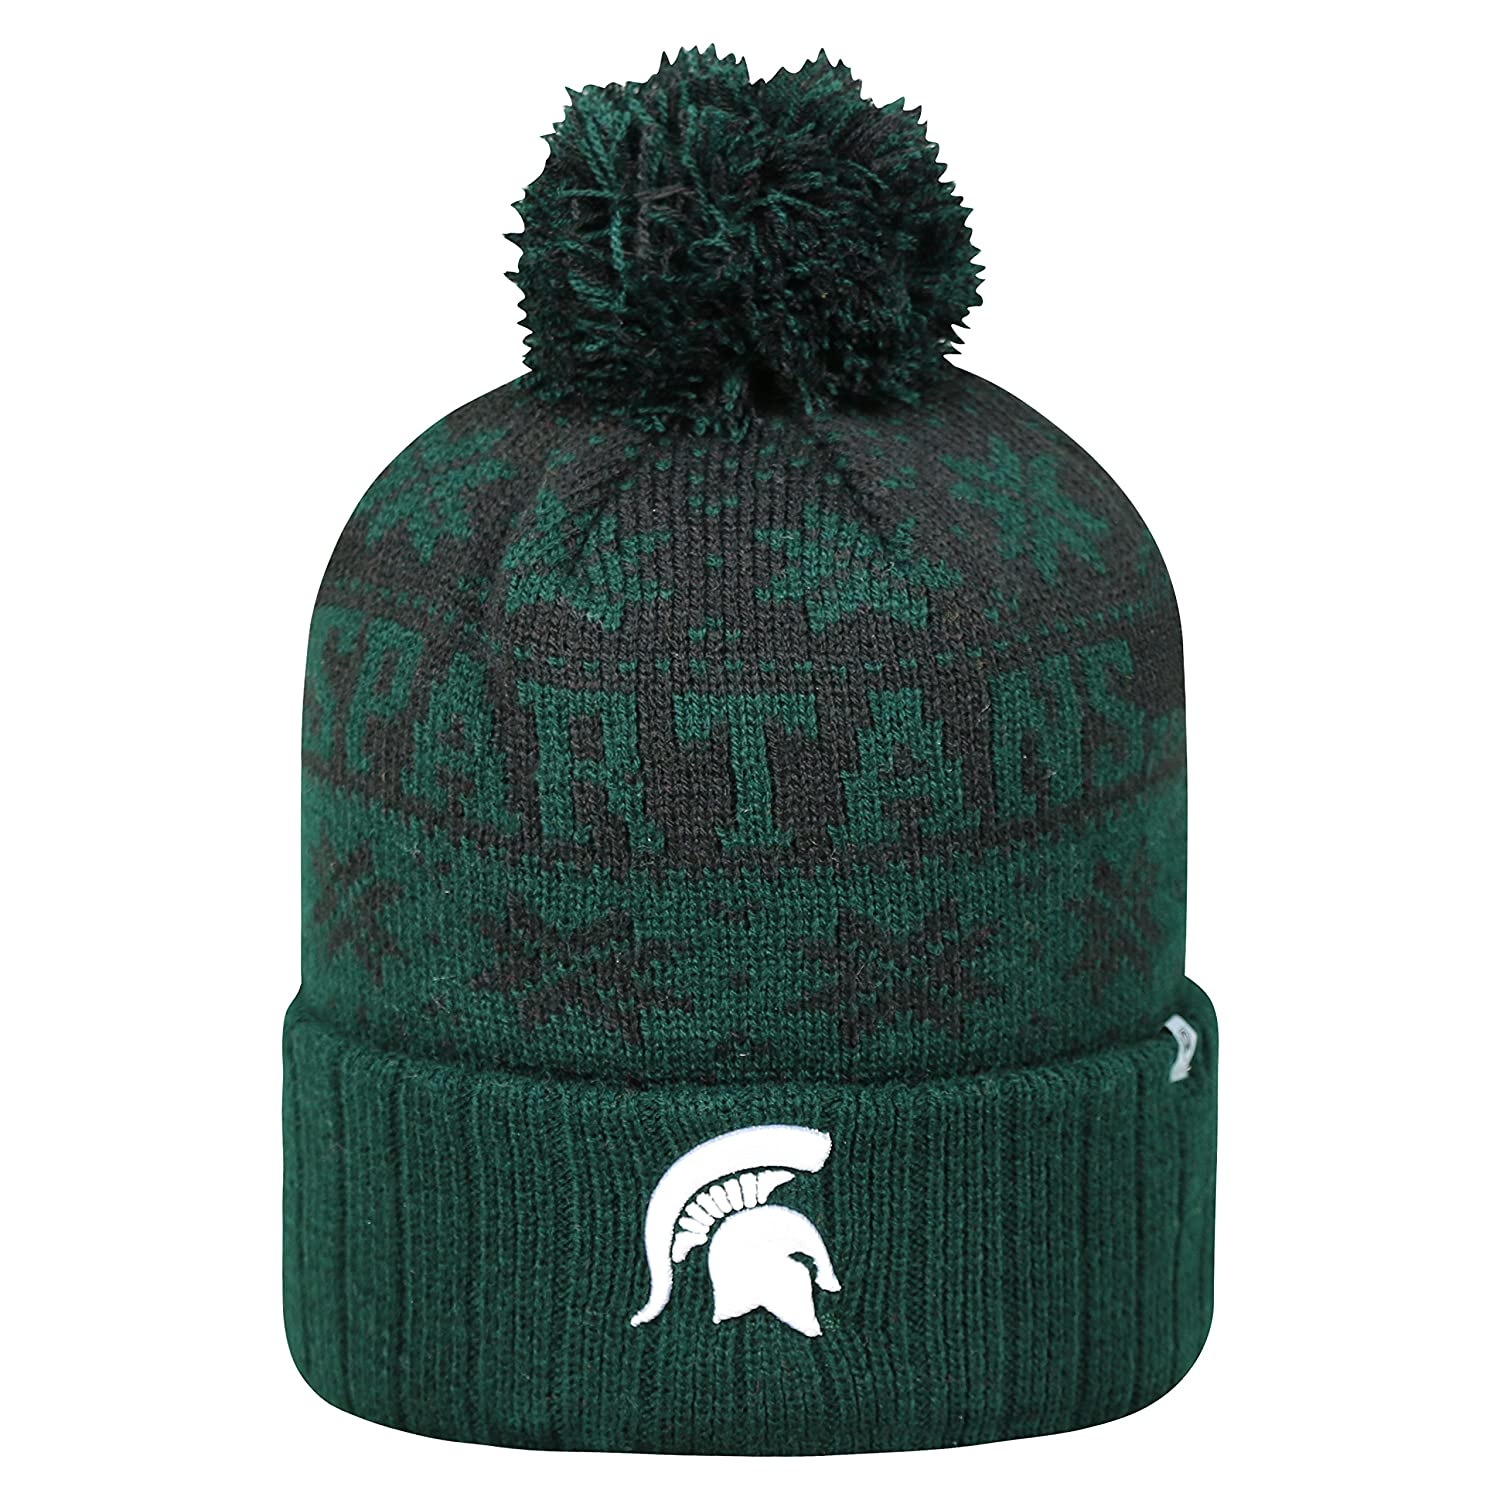 the best attitude 9a8fa 746eb Amazon.com   Top of the World Michigan State Spartans Subarctic Cuffed Pom  Knit Beanie Hat Cap   Clothing